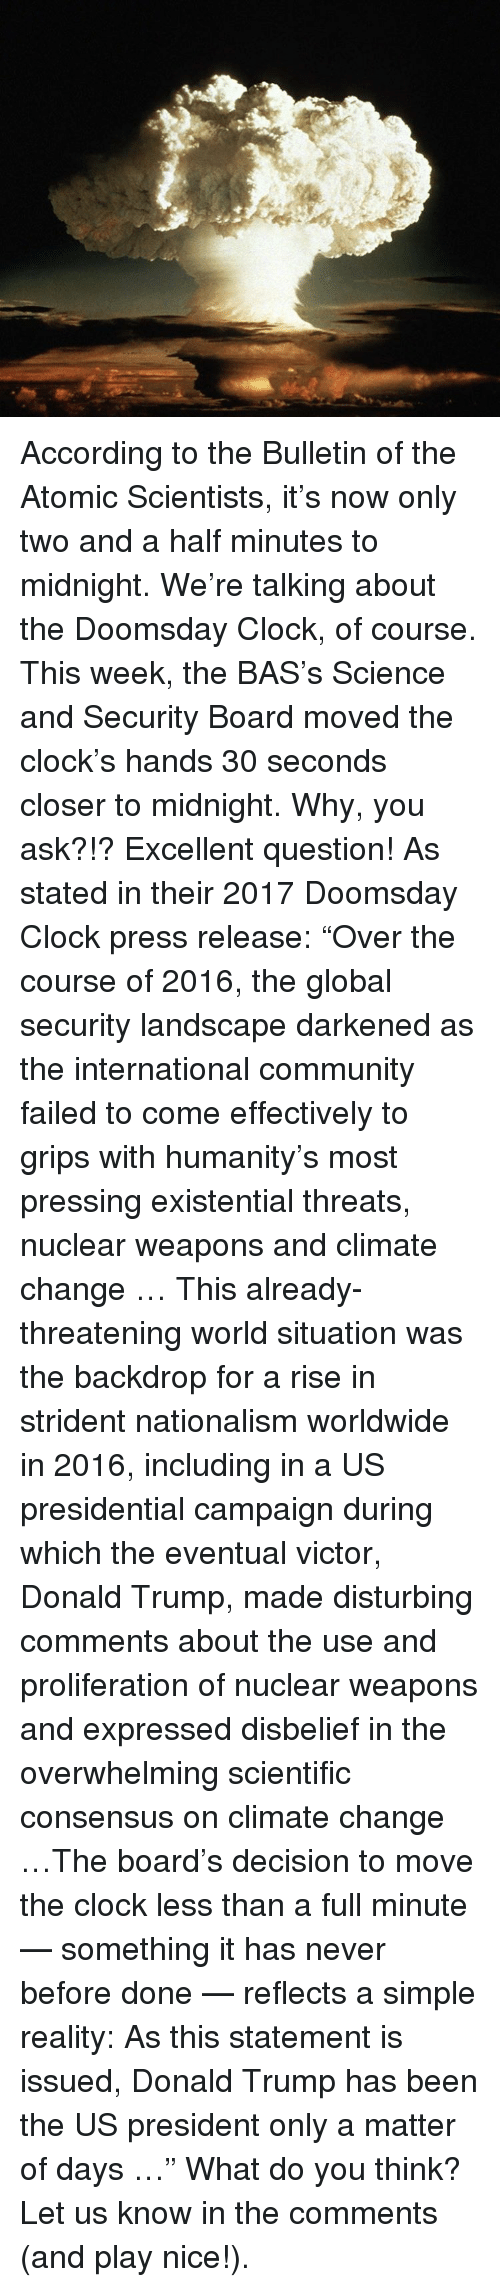 "Overwhelm: According to the Bulletin of the Atomic Scientists, it's now only two and a half minutes to midnight. We're talking about the Doomsday Clock, of course. This week, the BAS's Science and Security Board moved the clock's hands 30 seconds closer to midnight. Why, you ask?!? Excellent question! As stated in their 2017 Doomsday Clock press release: ""Over the course of 2016, the global security landscape darkened as the international community failed to come effectively to grips with humanity's most pressing existential threats, nuclear weapons and climate change … This already-threatening world situation was the backdrop for a rise in strident nationalism worldwide in 2016, including in a US presidential campaign during which the eventual victor, Donald Trump, made disturbing comments about the use and proliferation of nuclear weapons and expressed disbelief in the overwhelming scientific consensus on climate change …The board's decision to move the clock less than a full minute — something it has never before done — reflects a simple reality: As this statement is issued, Donald Trump has been the US president only a matter of days …"" What do you think? Let us know in the comments (and play nice!)."